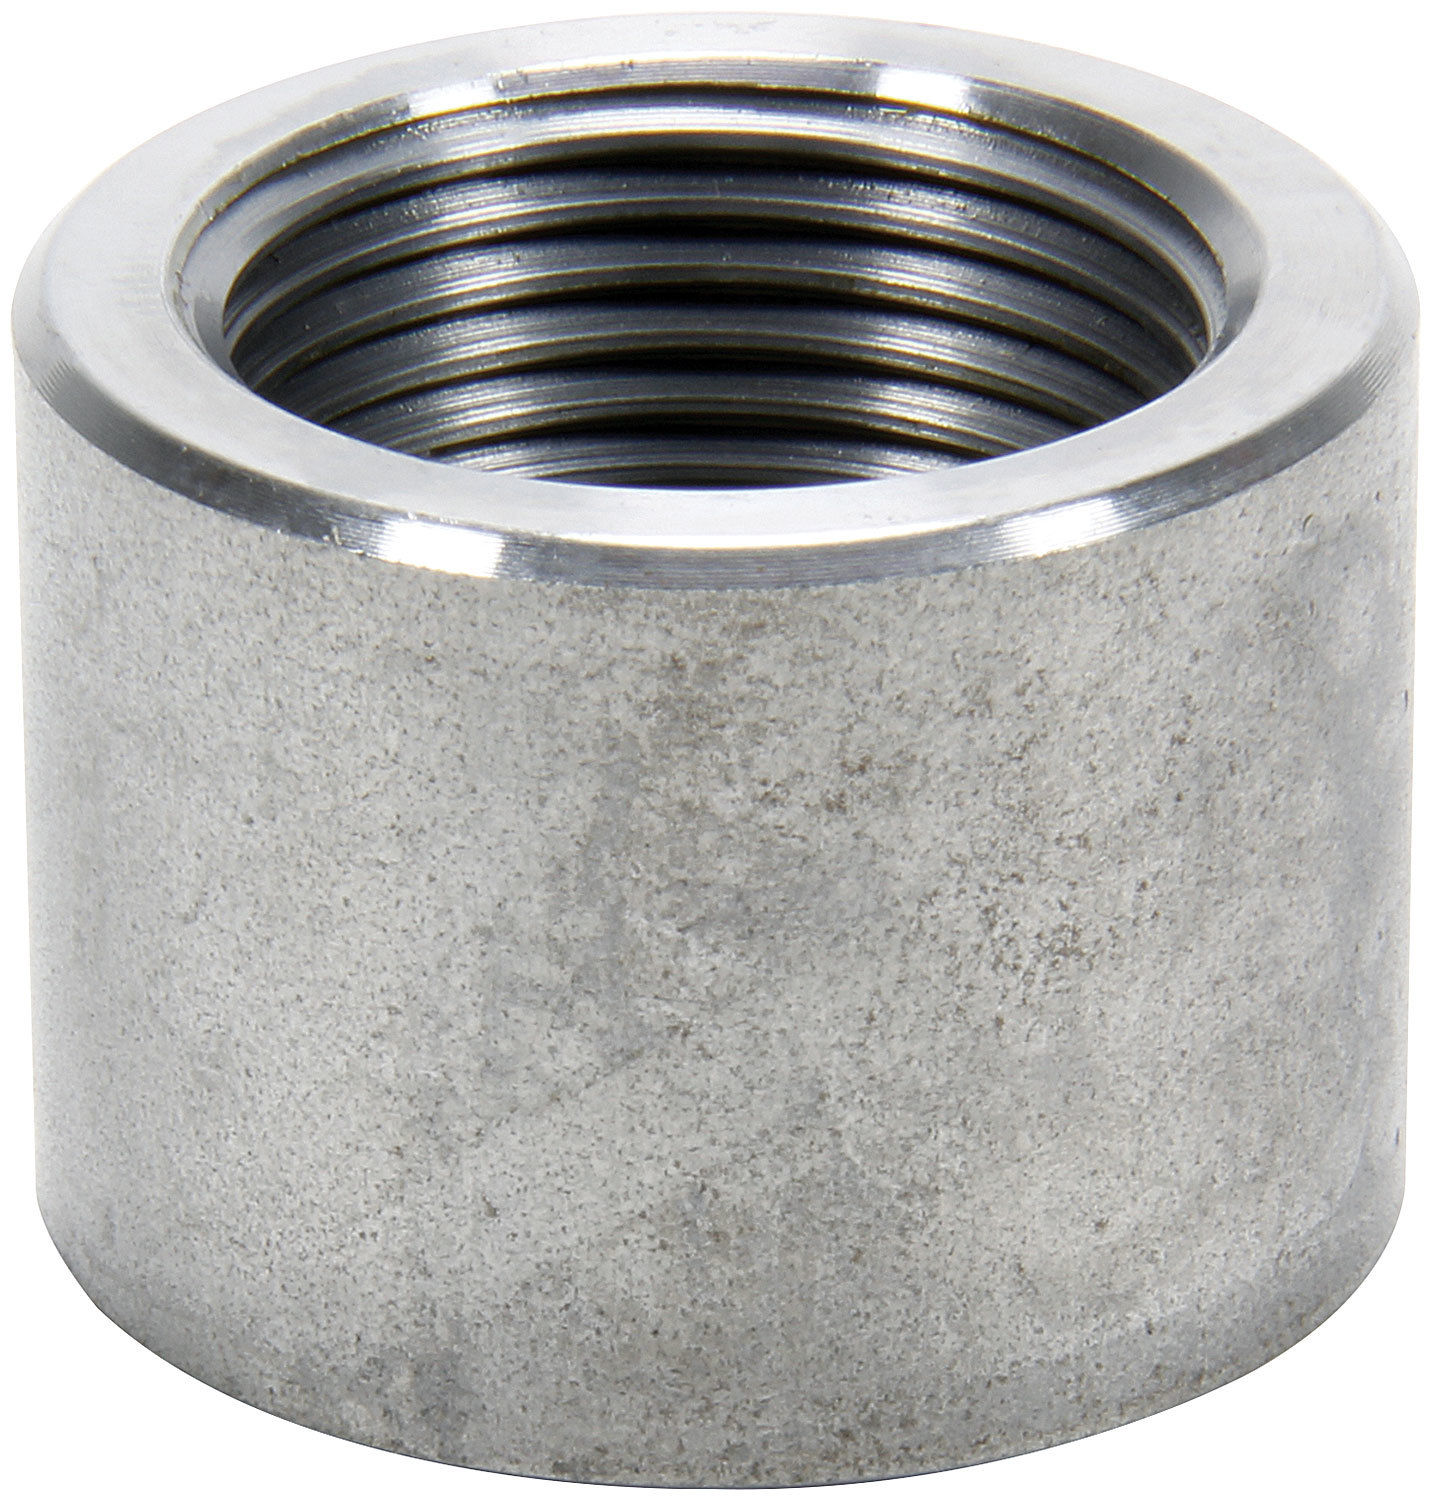 Allstar Performance 50754 Bung, 3/4 in NPT Female, Weld-On, Steel, Natural, Each